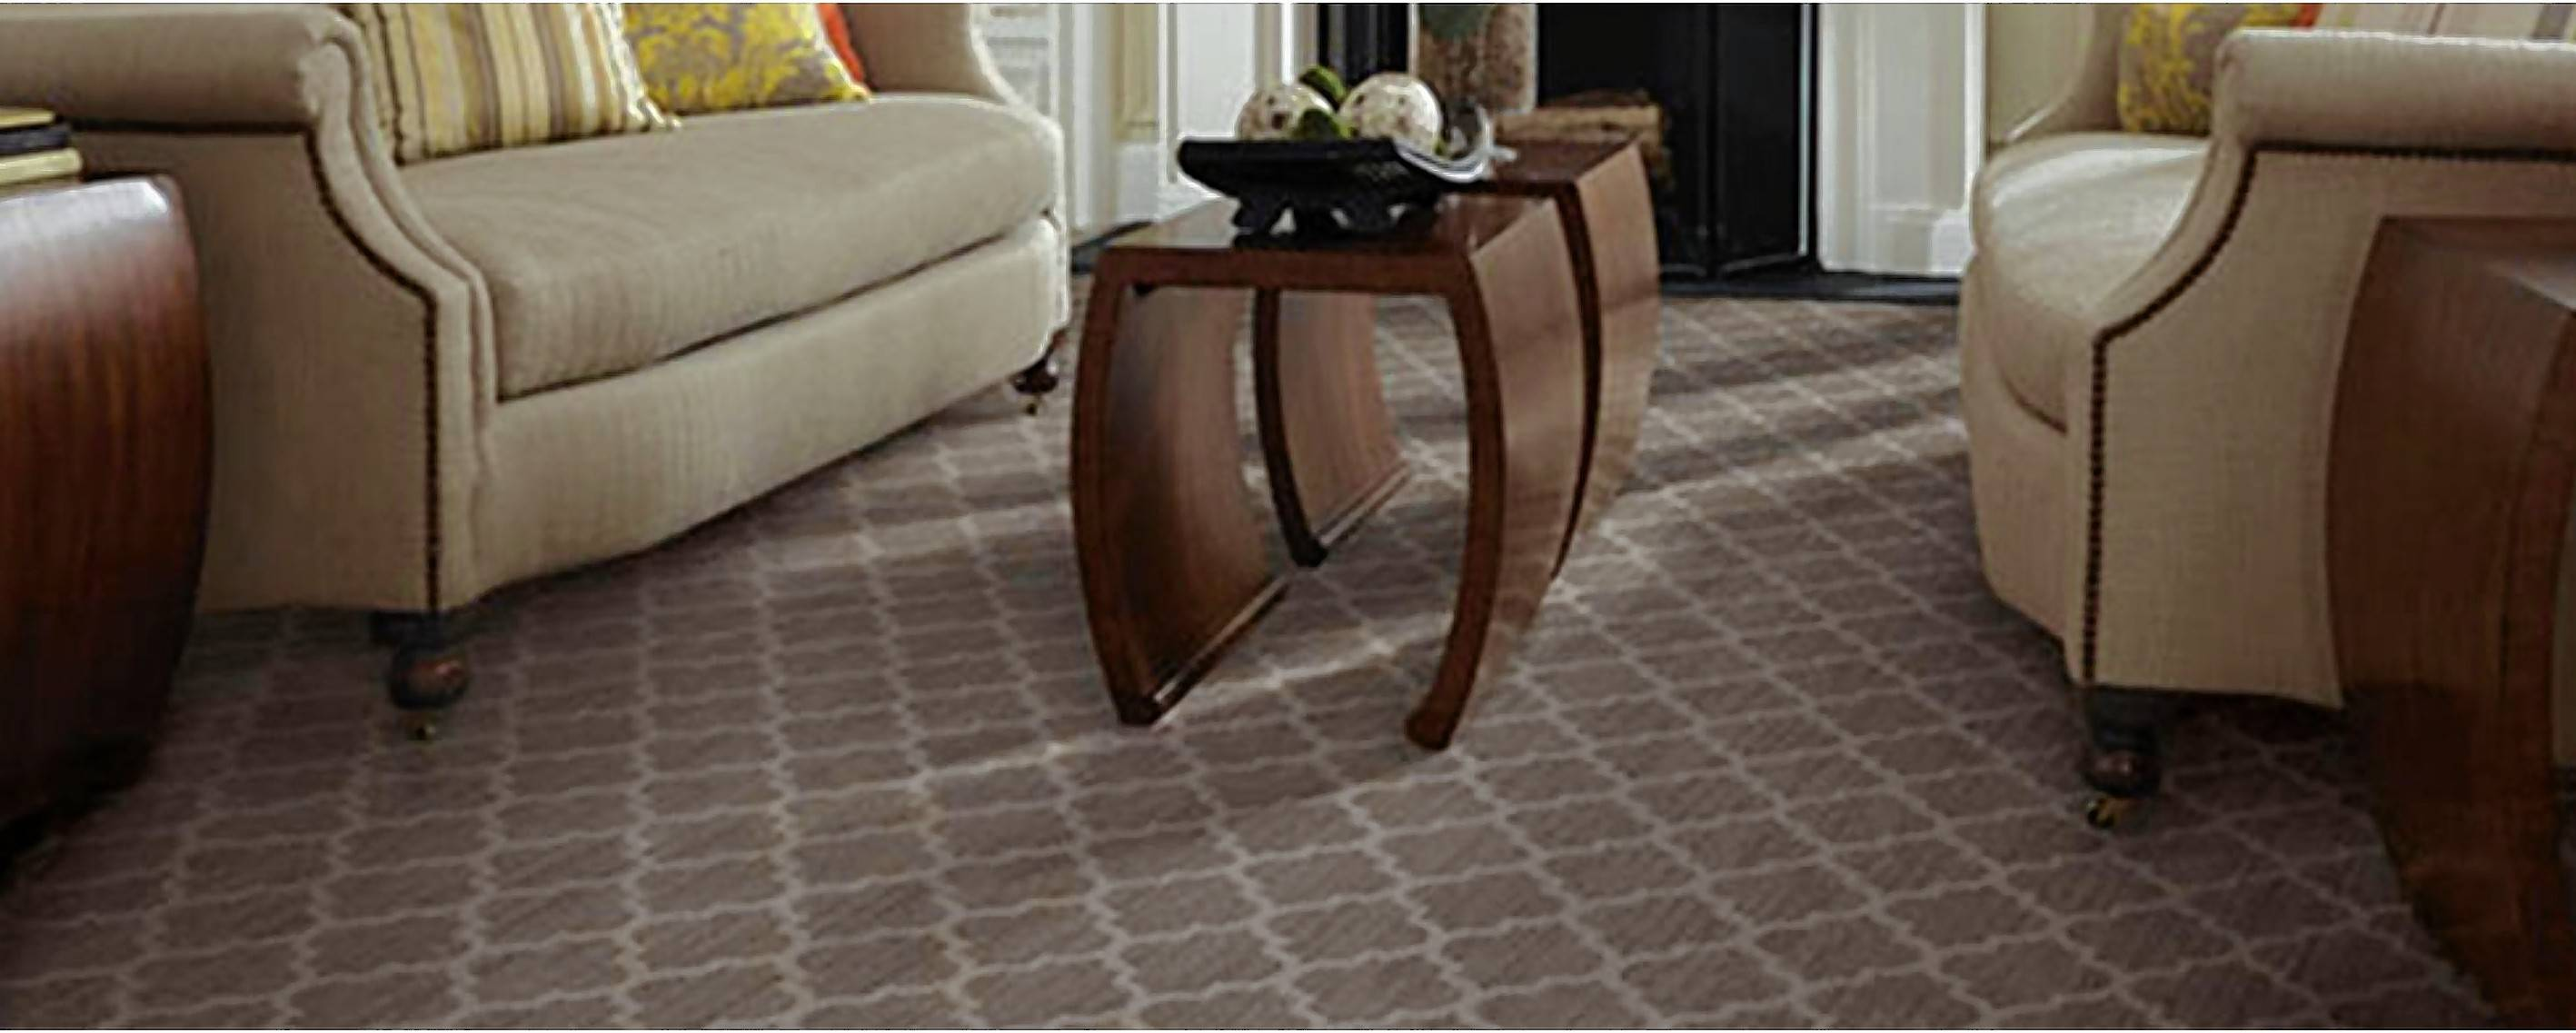 Wall-to-wall carpeting comes in a multitude of color and pattern combinations.